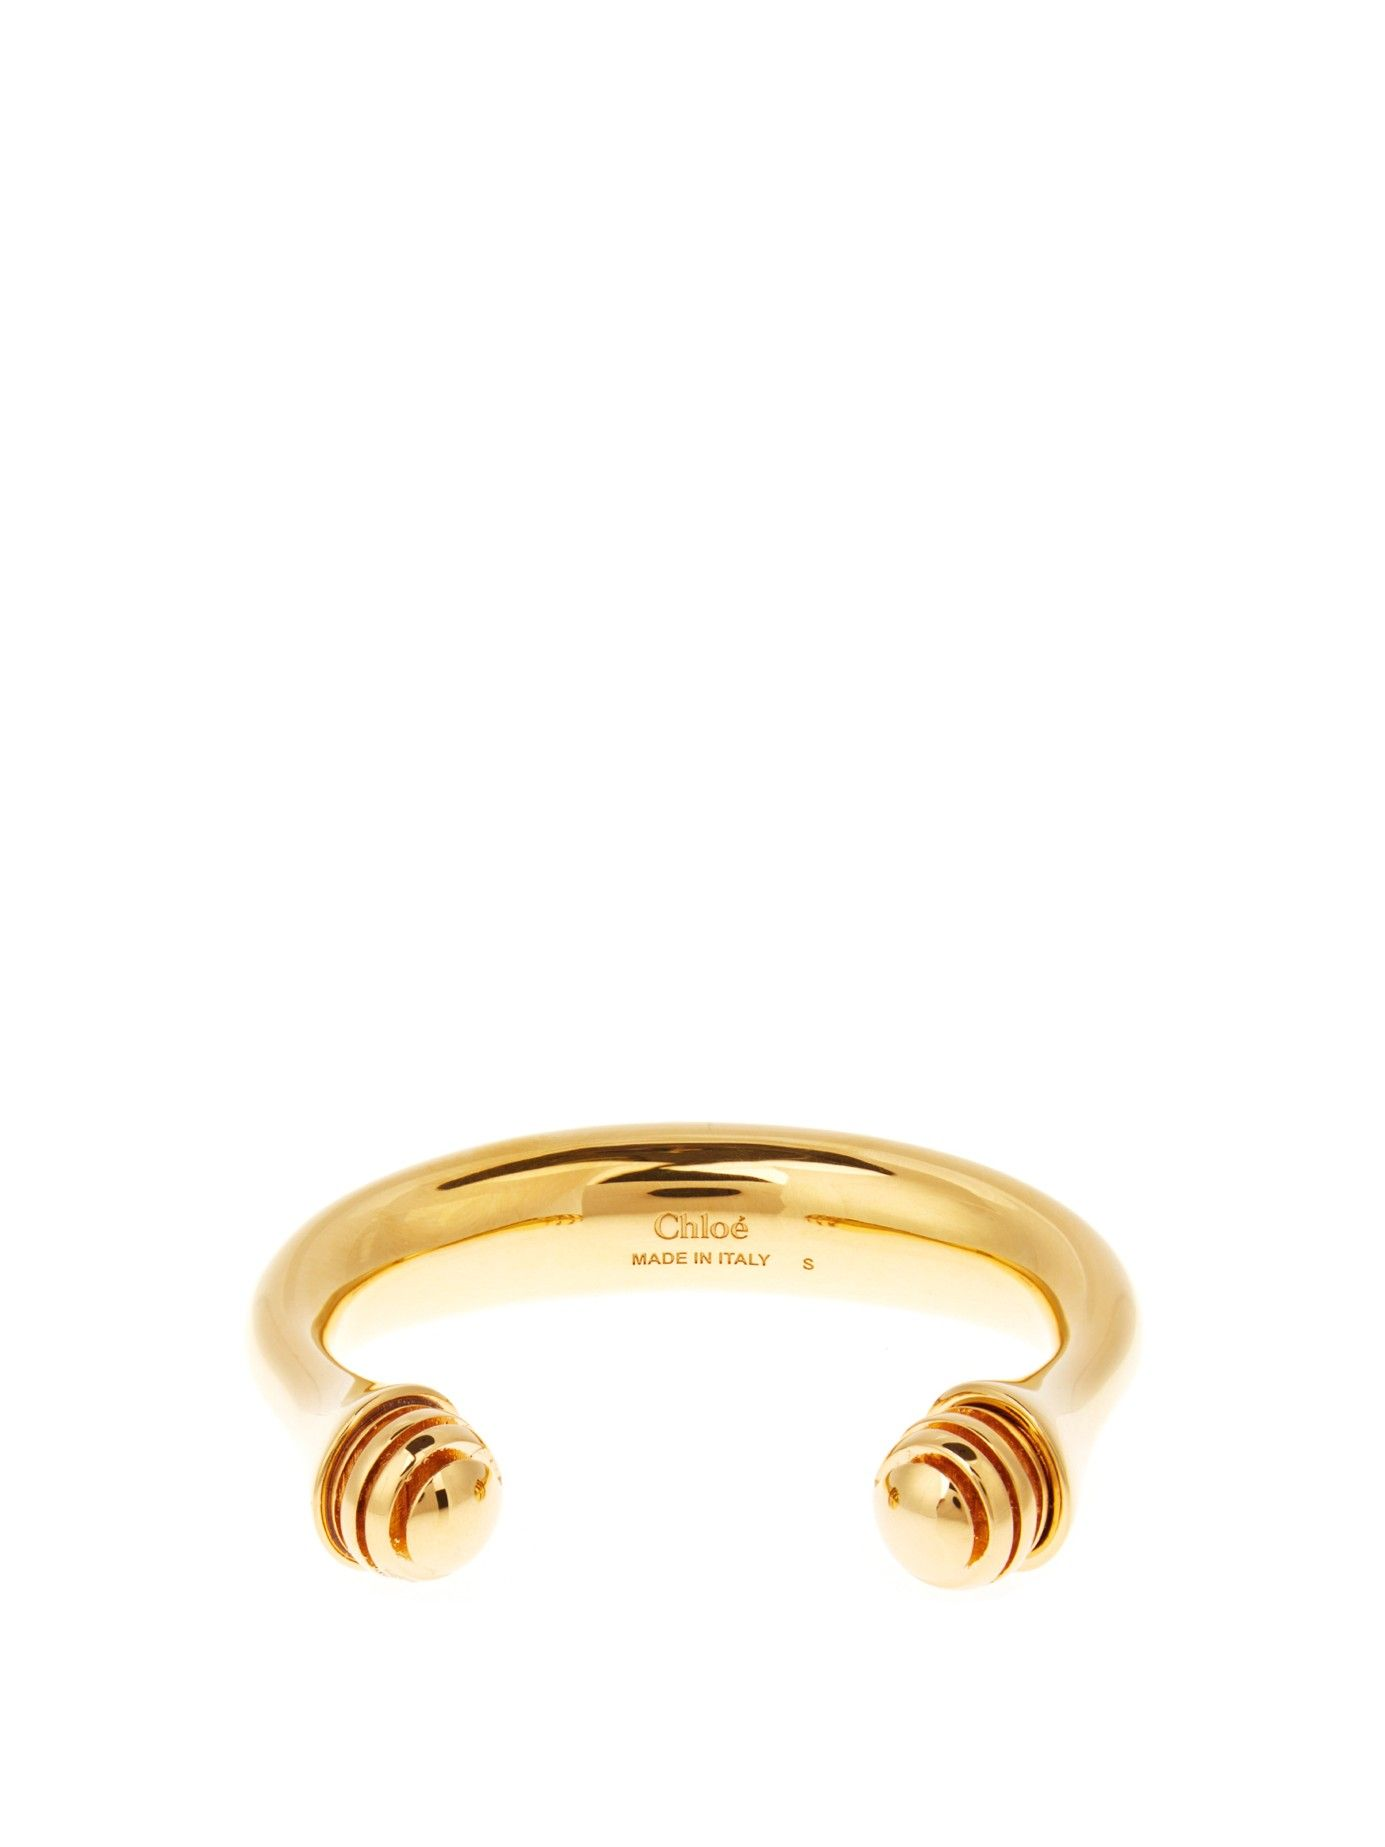 Darcy cuff | Chloé | MATCHESFASHION.COM UK